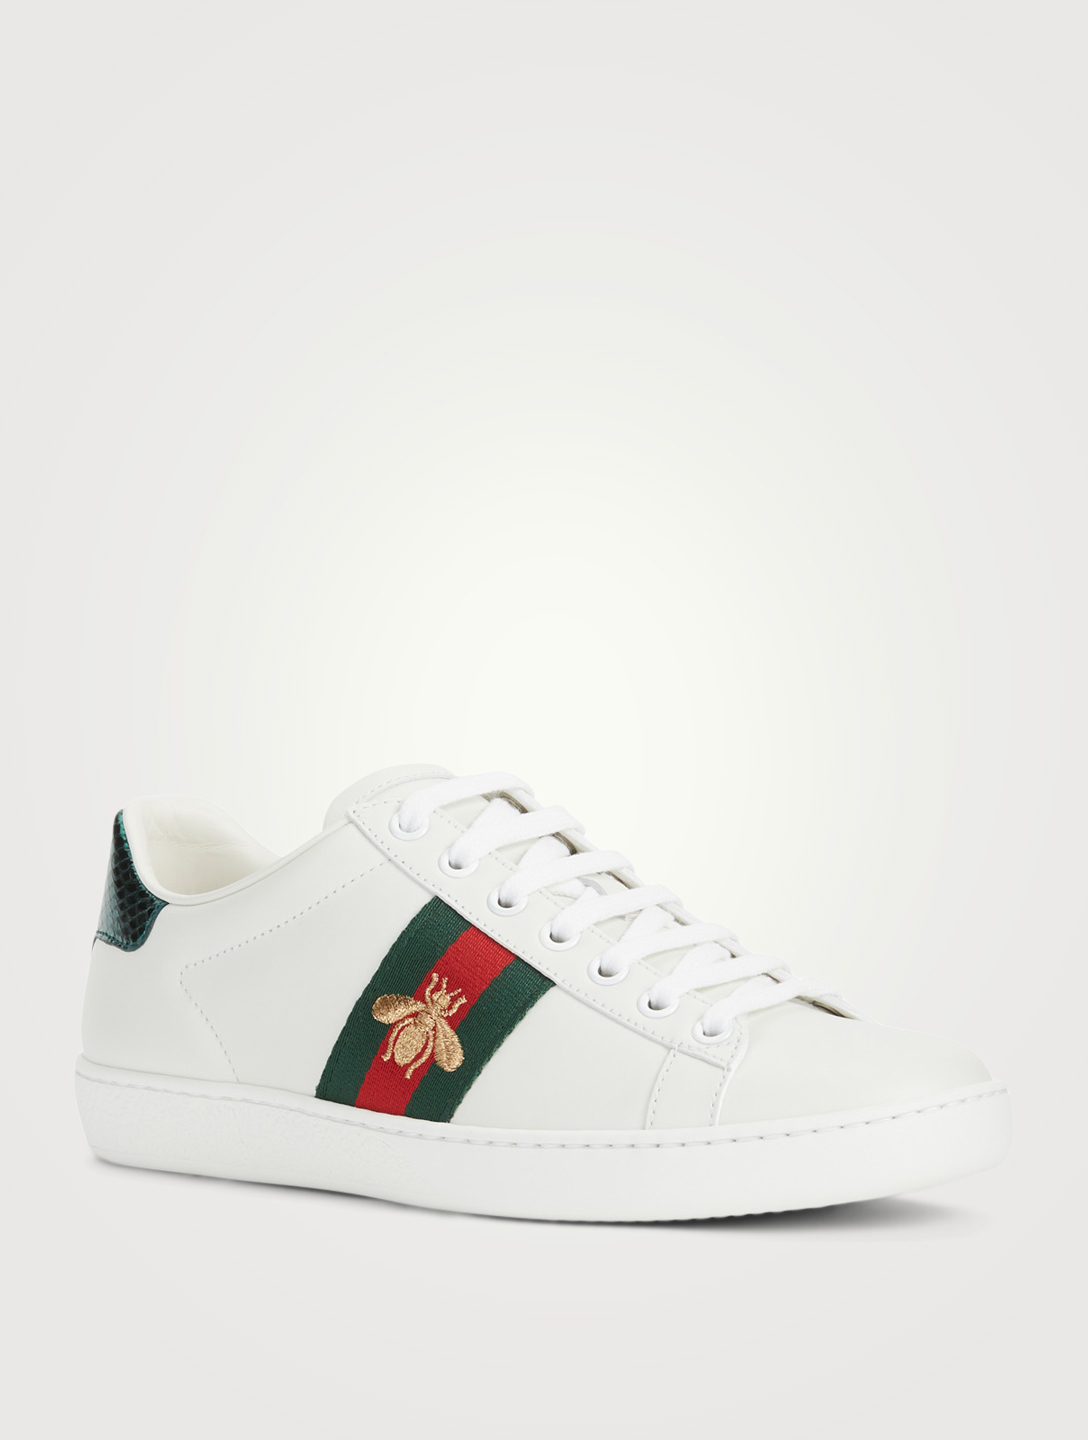 df0735247f0 ... GUCCI New Ace Embroidered Leather Sneakers Designers White ...